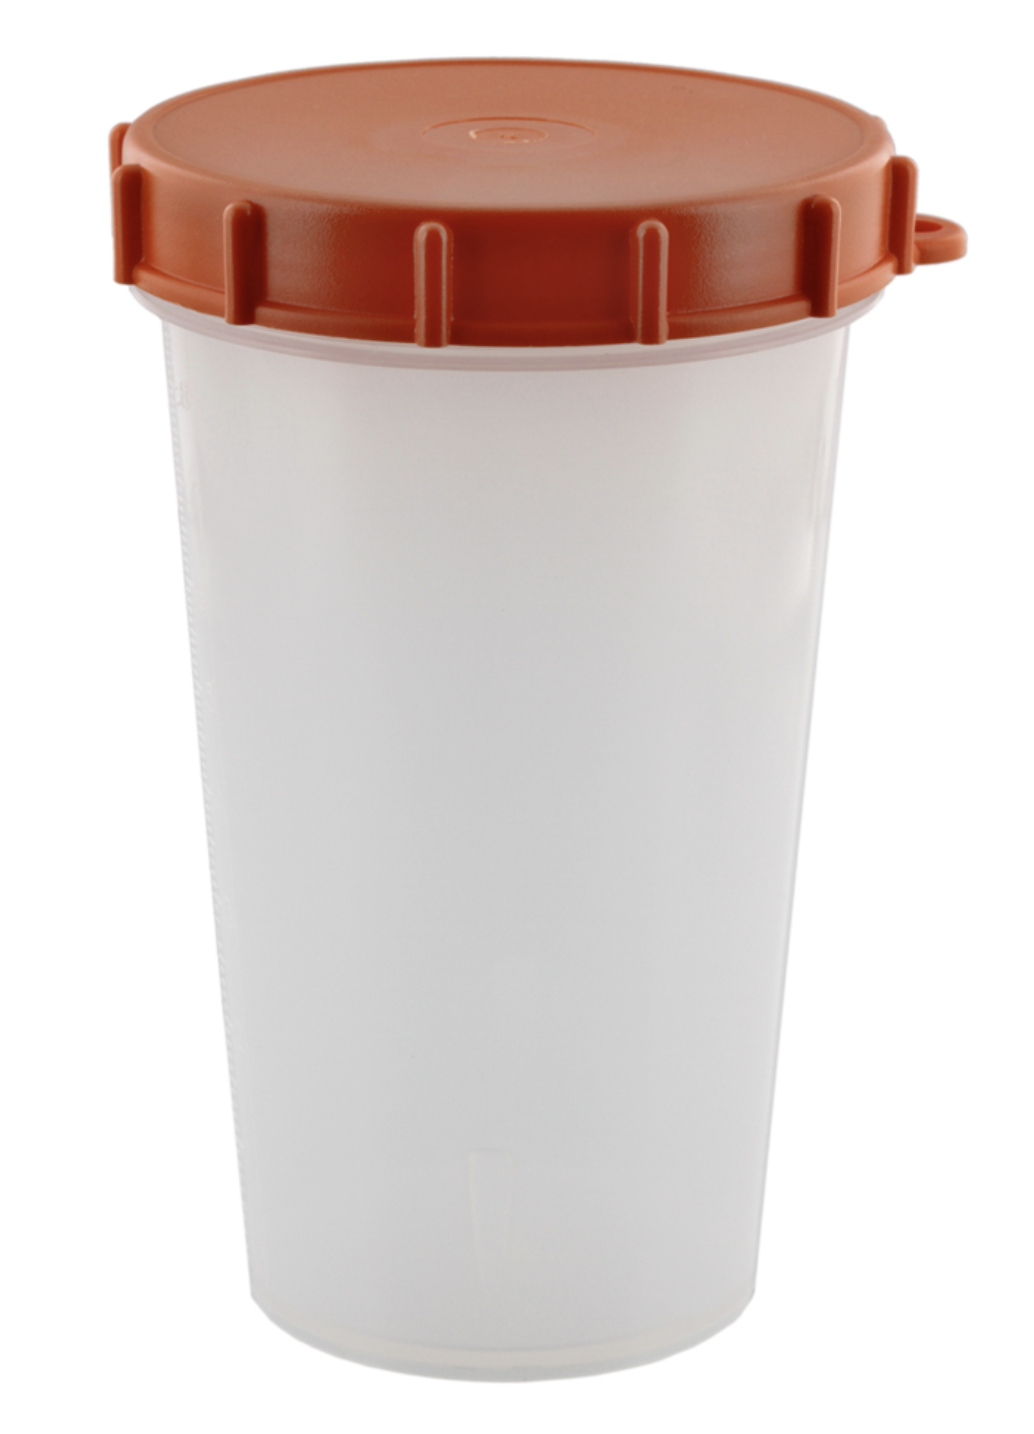 Safety & Rescue: 774 - Watertight Emergency Equipment Container by Scotty - Image 4848